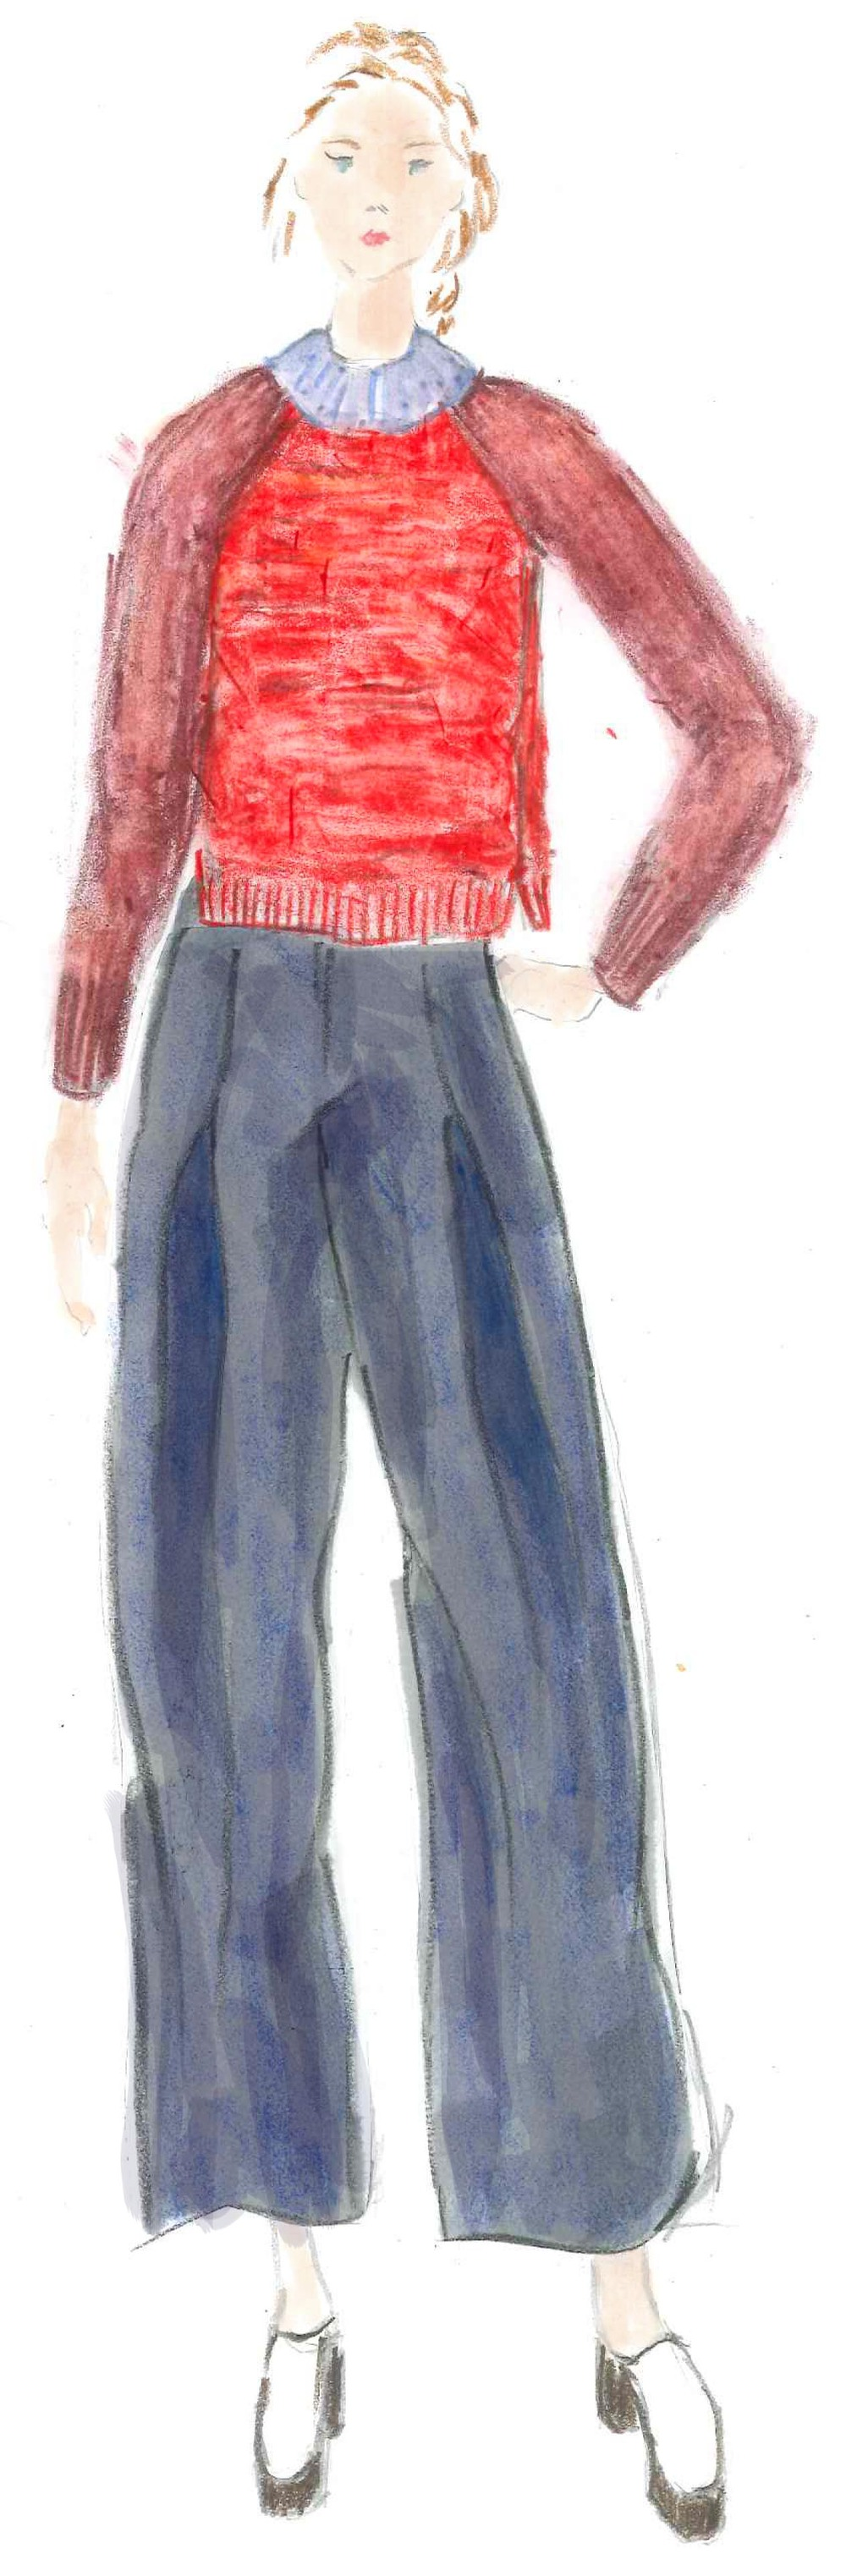 red_blue_sweater_sketch.jpg